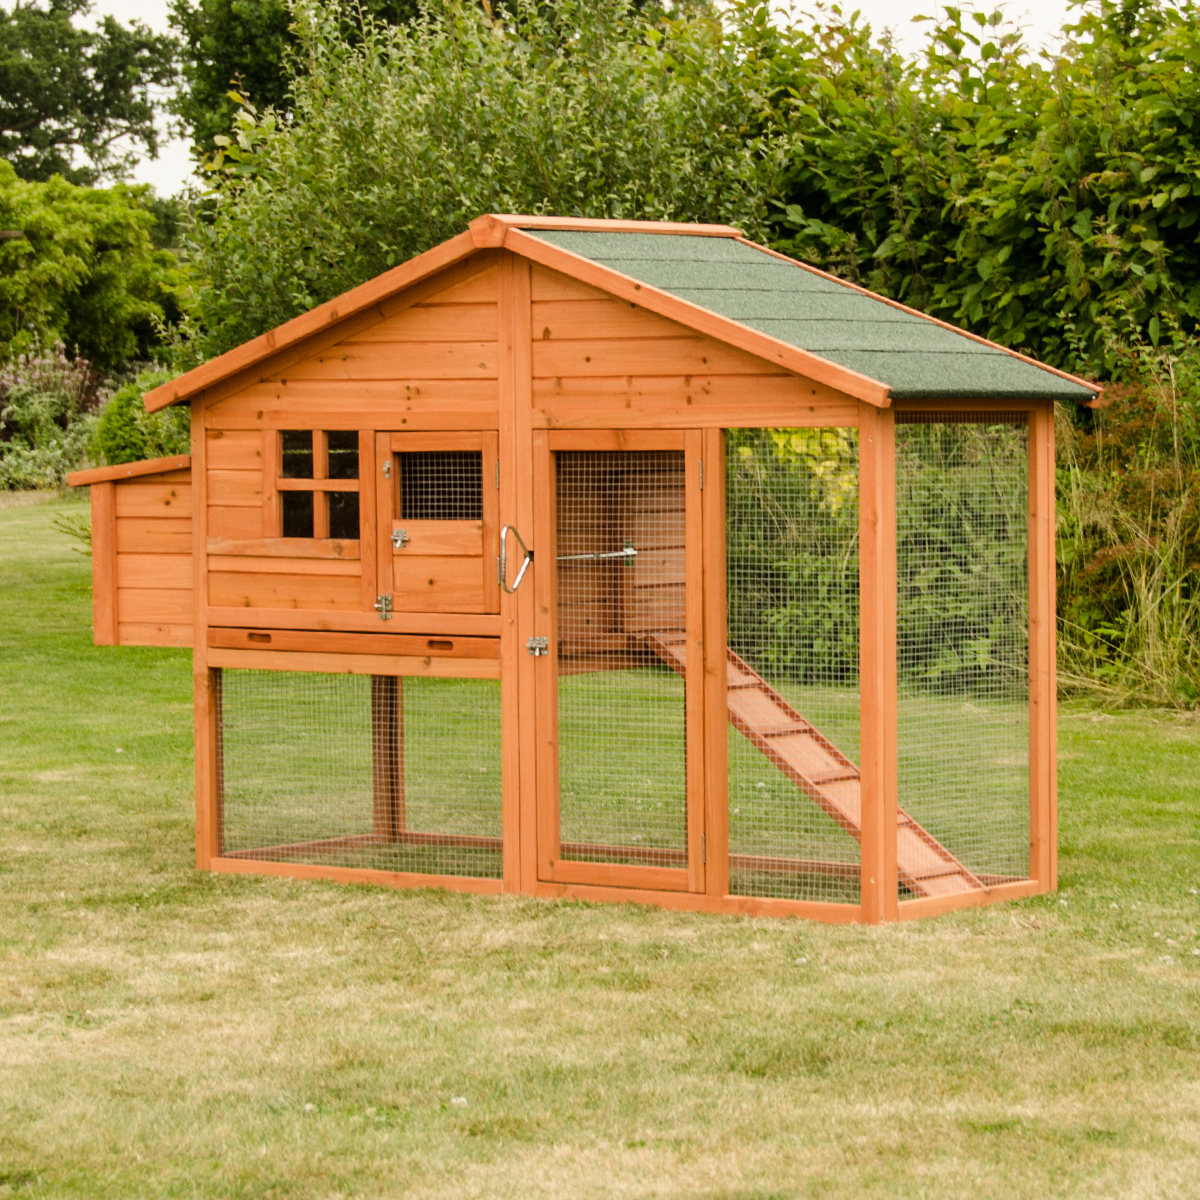 Malaga chicken coop and run pisces for Chicken coop with run for 6 chickens